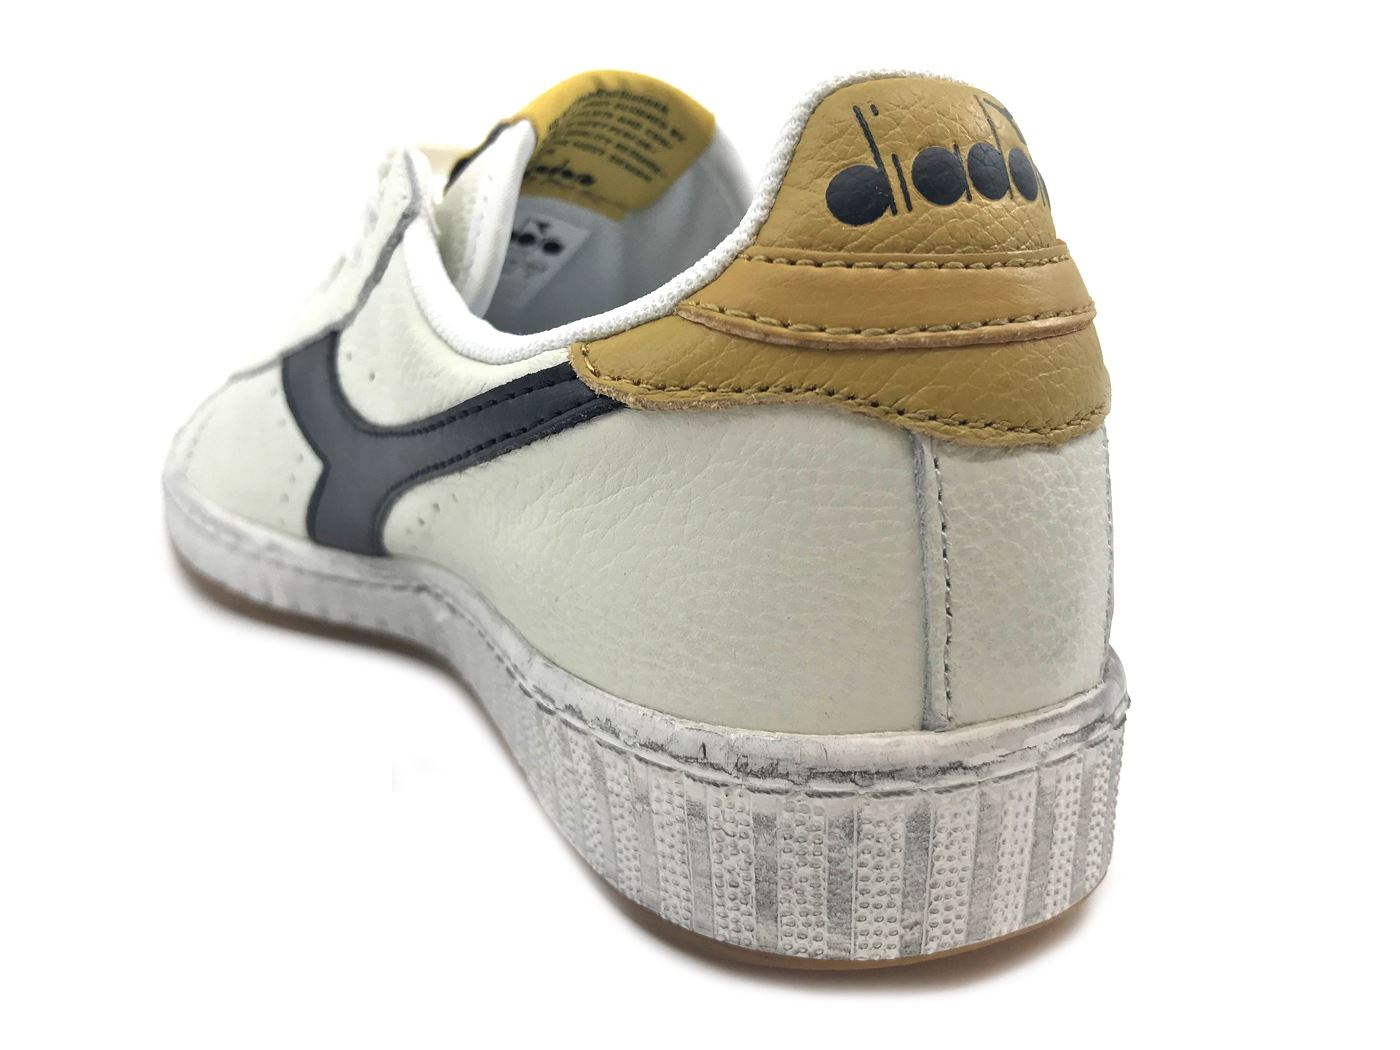 DIADORA GAME L L GAME LOW WAXED C7707 SNEAKER IN PELLE BIANCO MainApps f68ddb